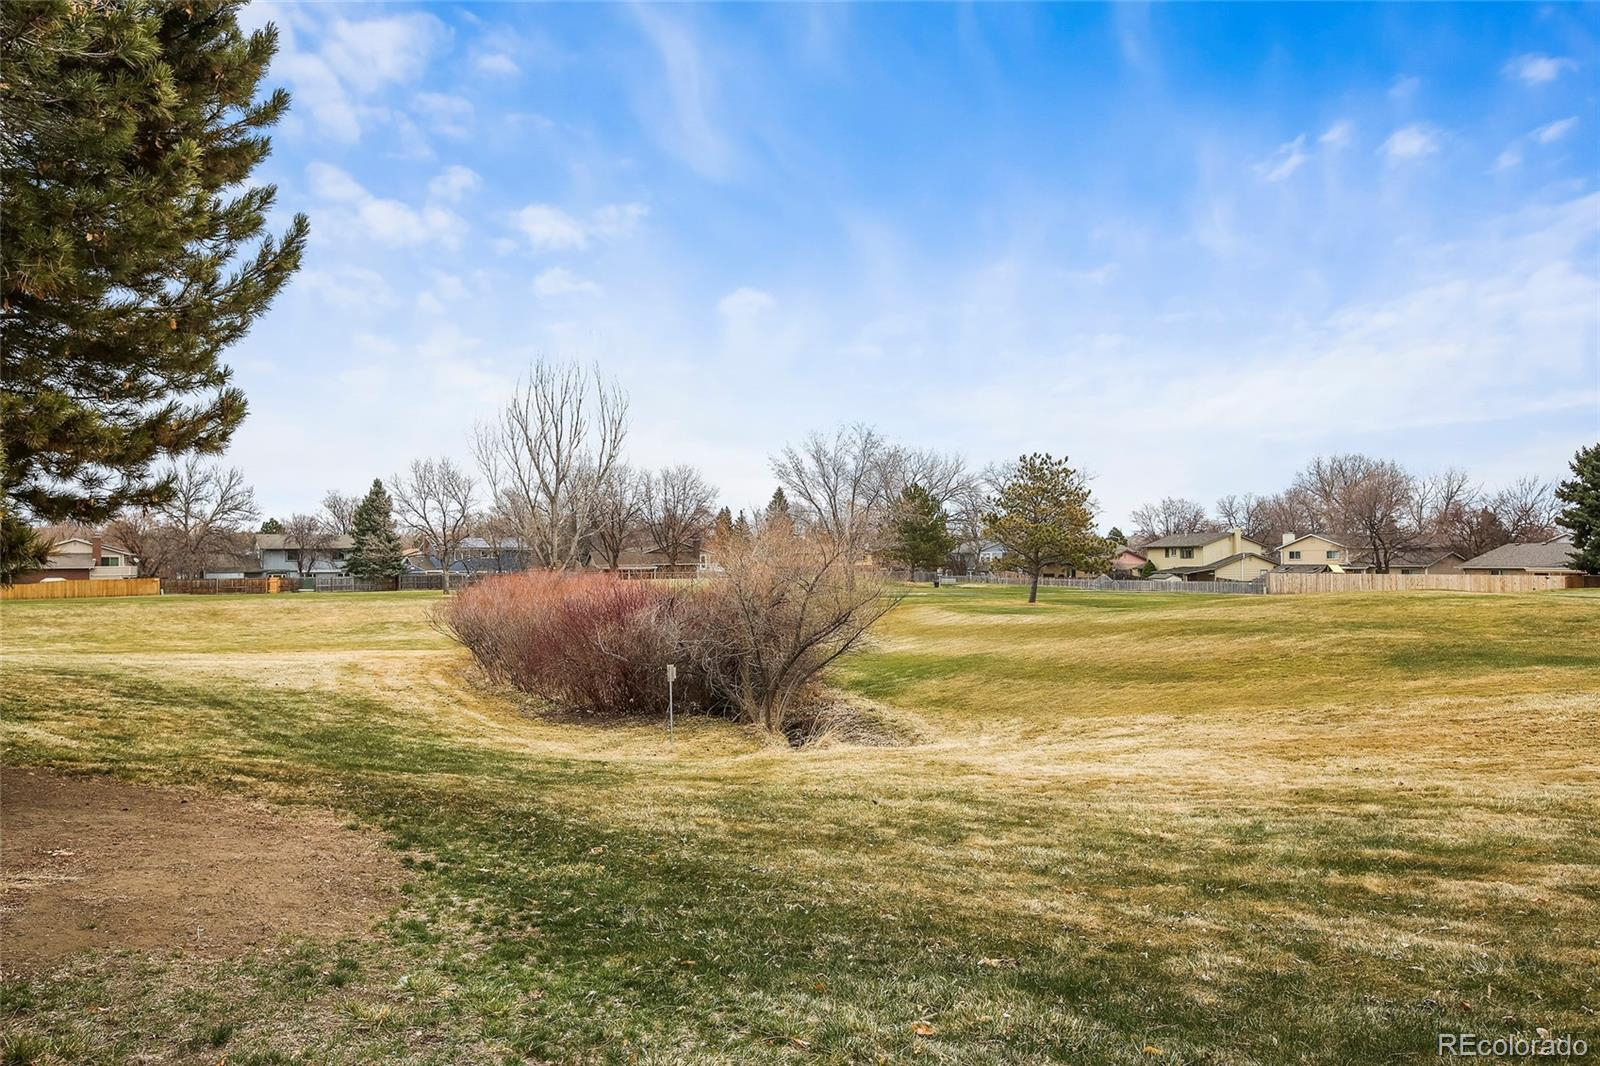 MLS# 3840933 - 6505 W 84th Way #138, Arvada, CO 80003